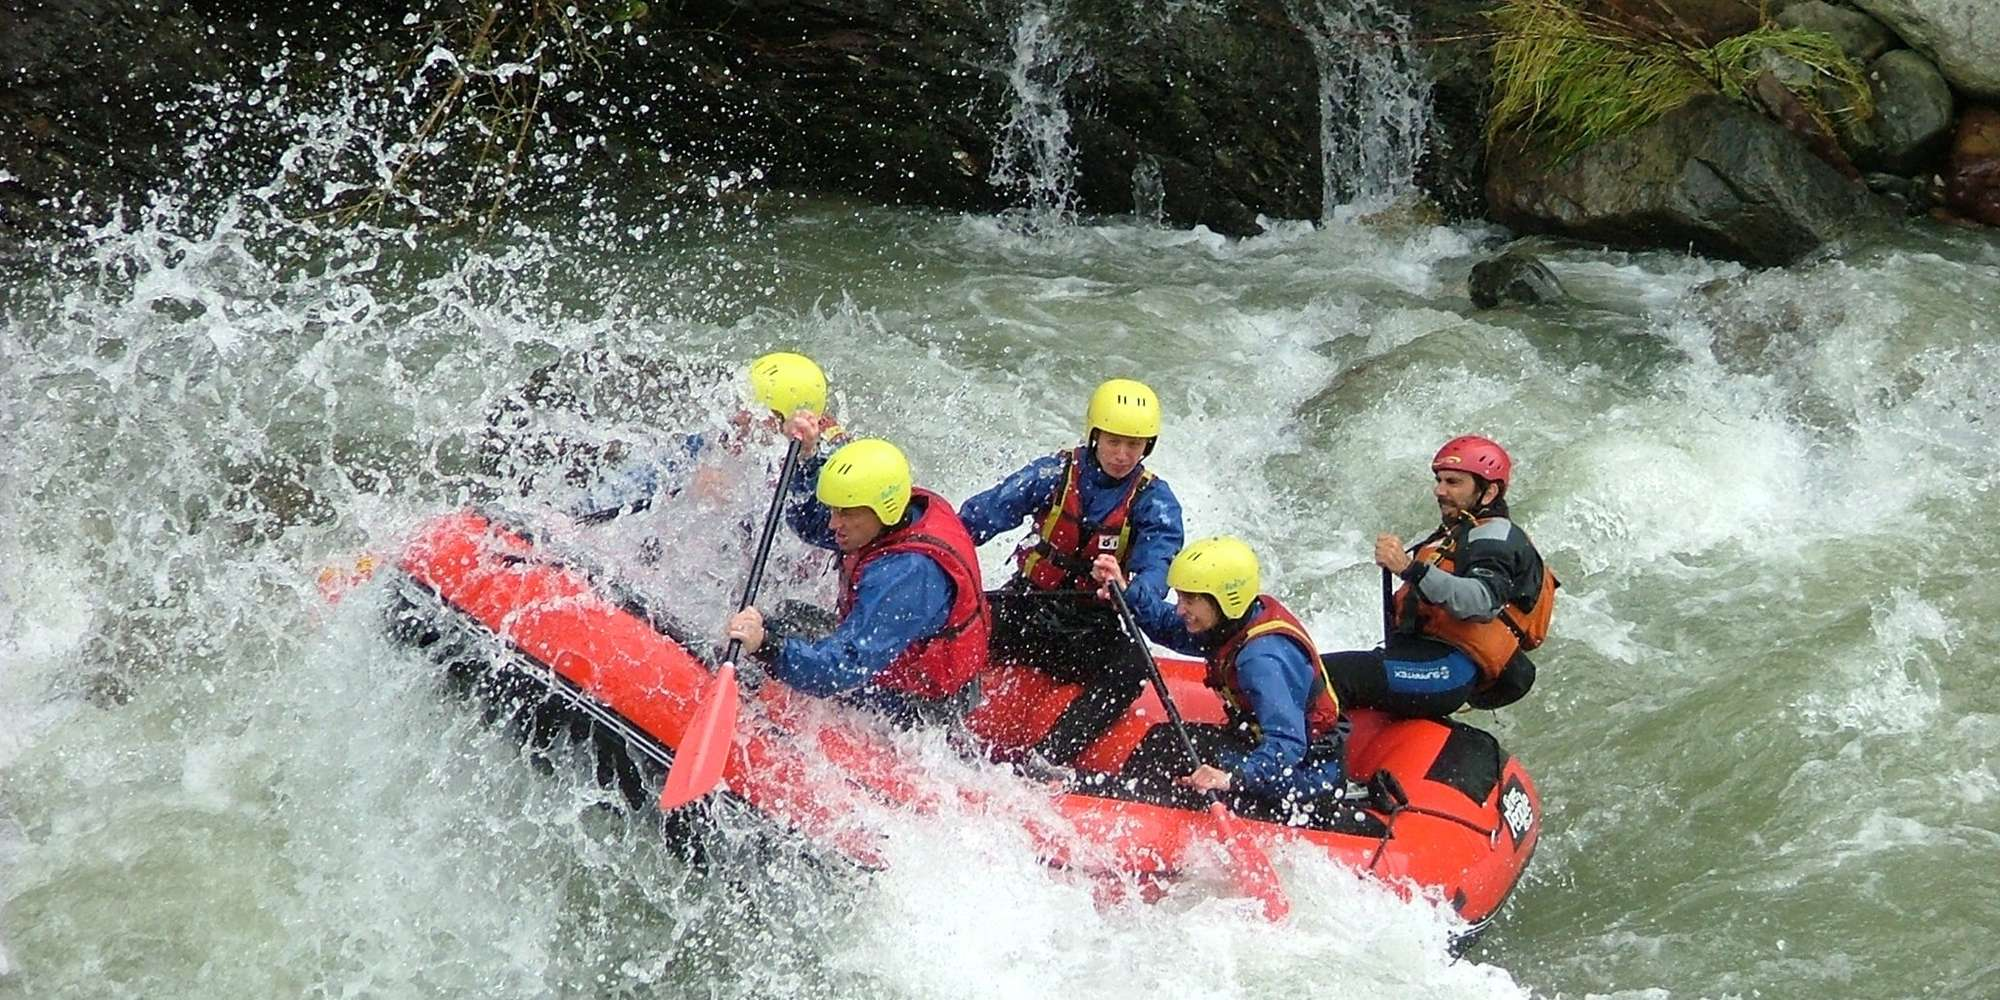 Rafting, Laces - Val Vensota